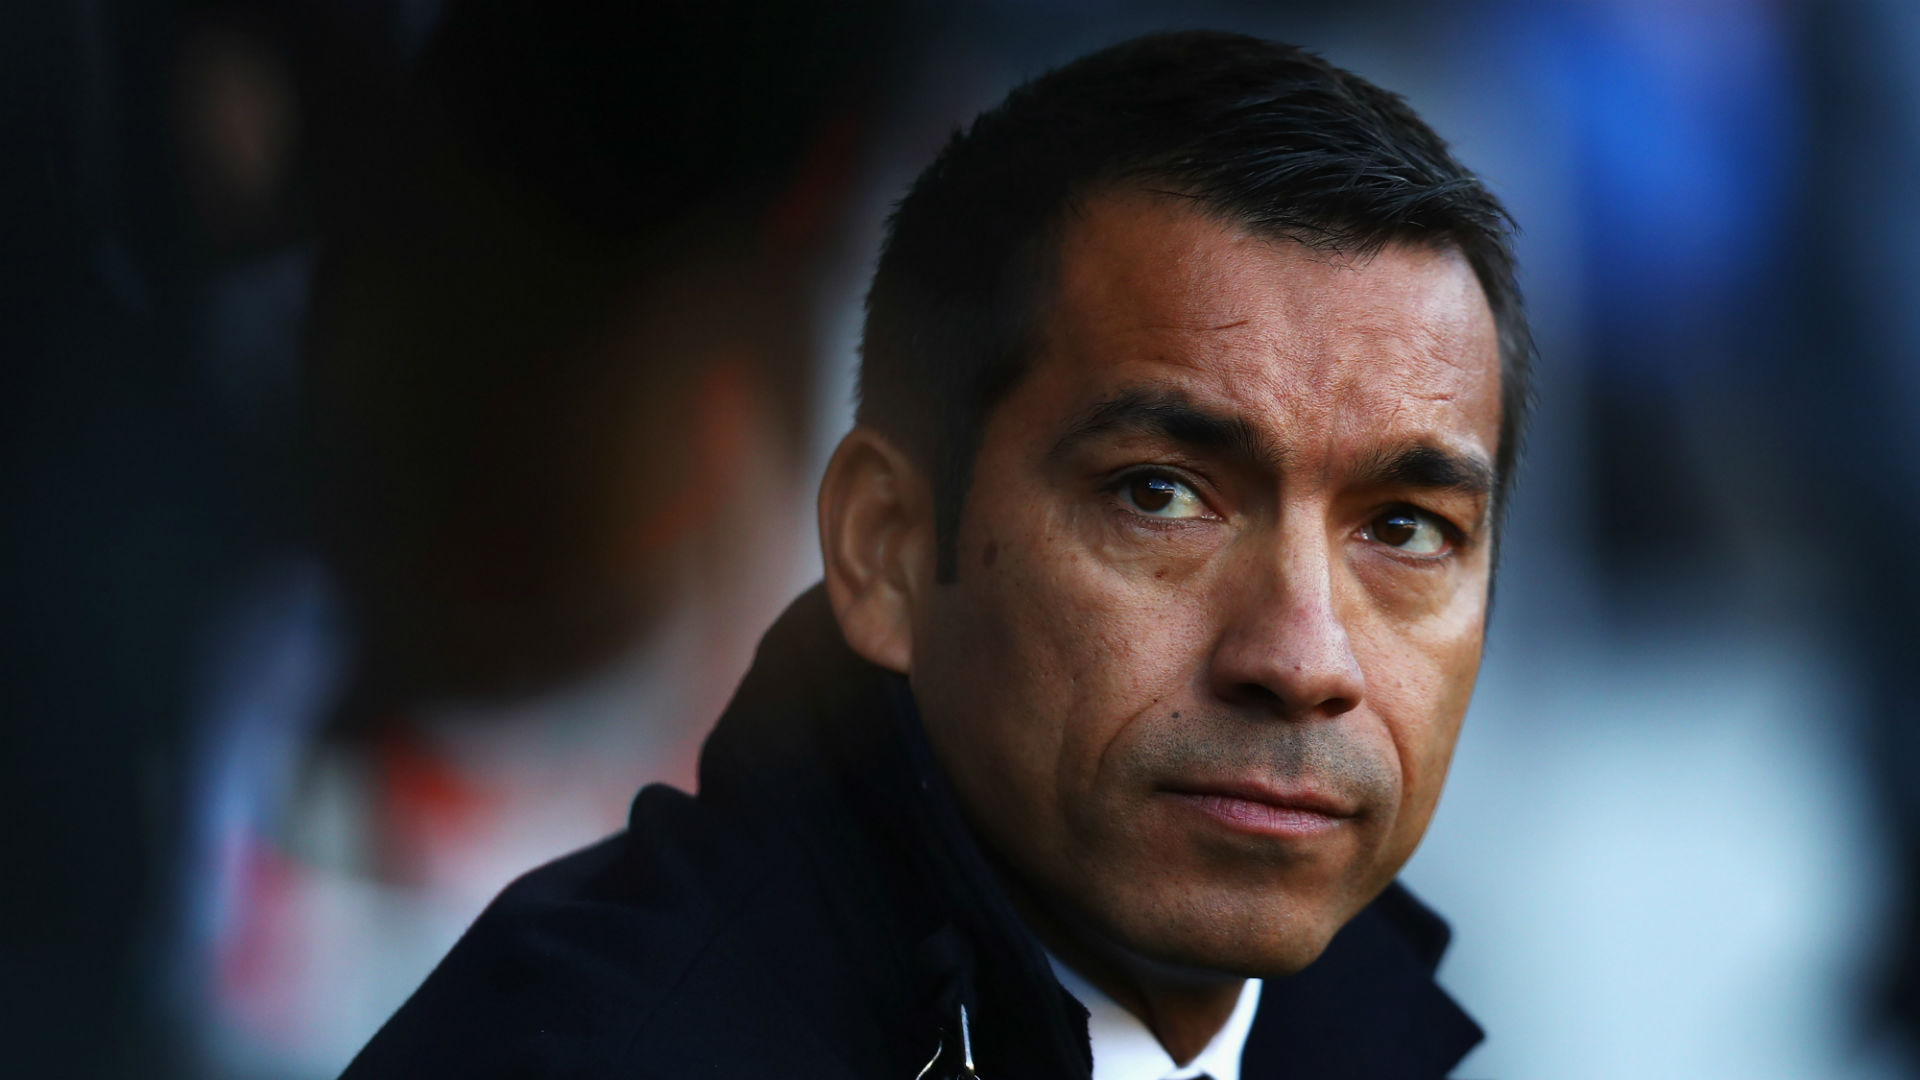 Despite being happy at Guangzhou R&F in China, Giovanni van Bronckhorst dreams of working in the Premier League.